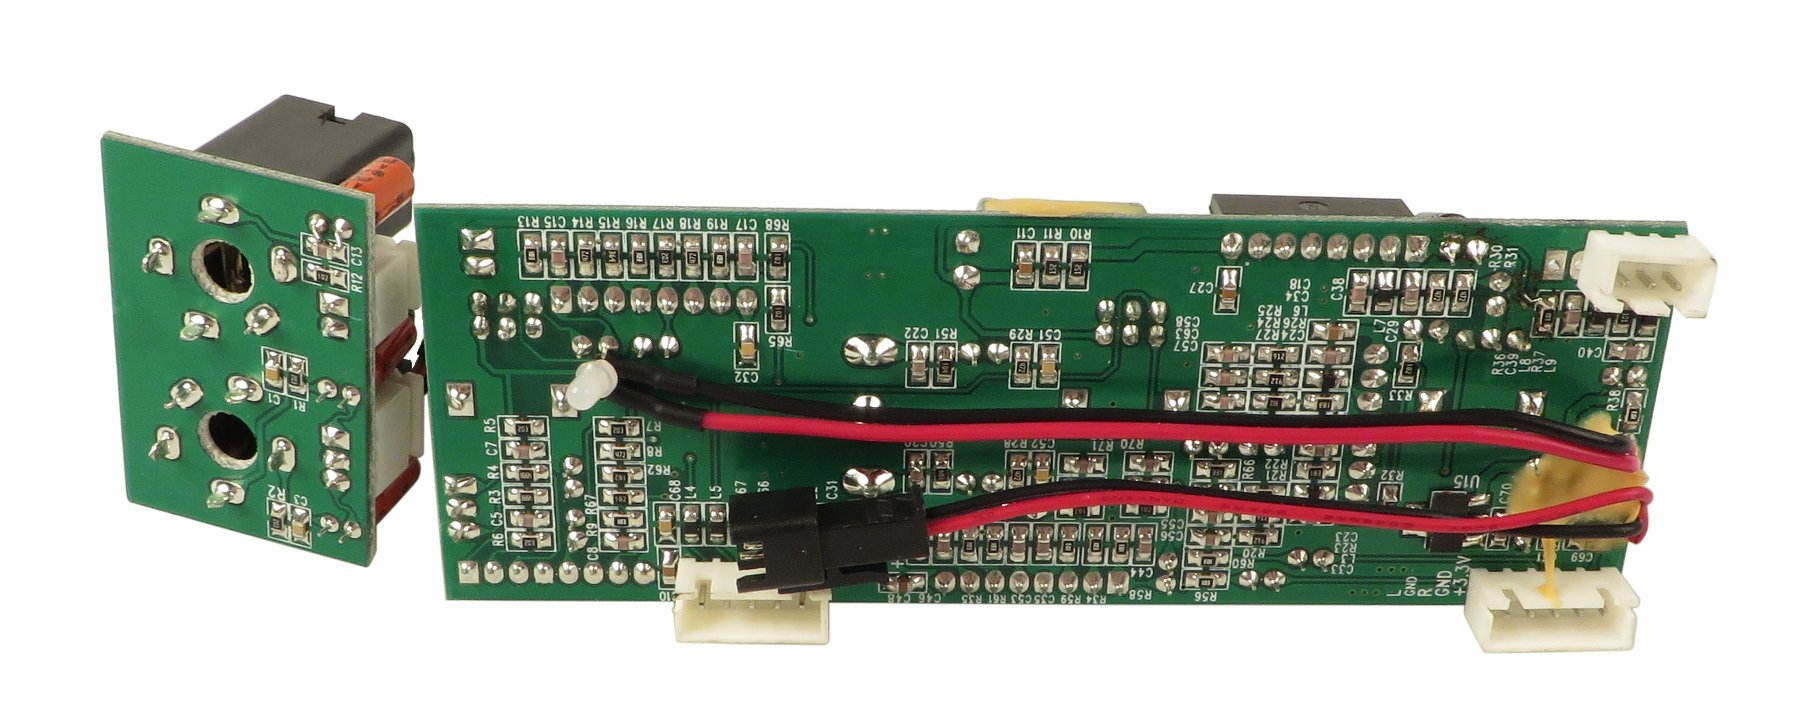 Pre/Front Panel PCB Assembly for iPA16